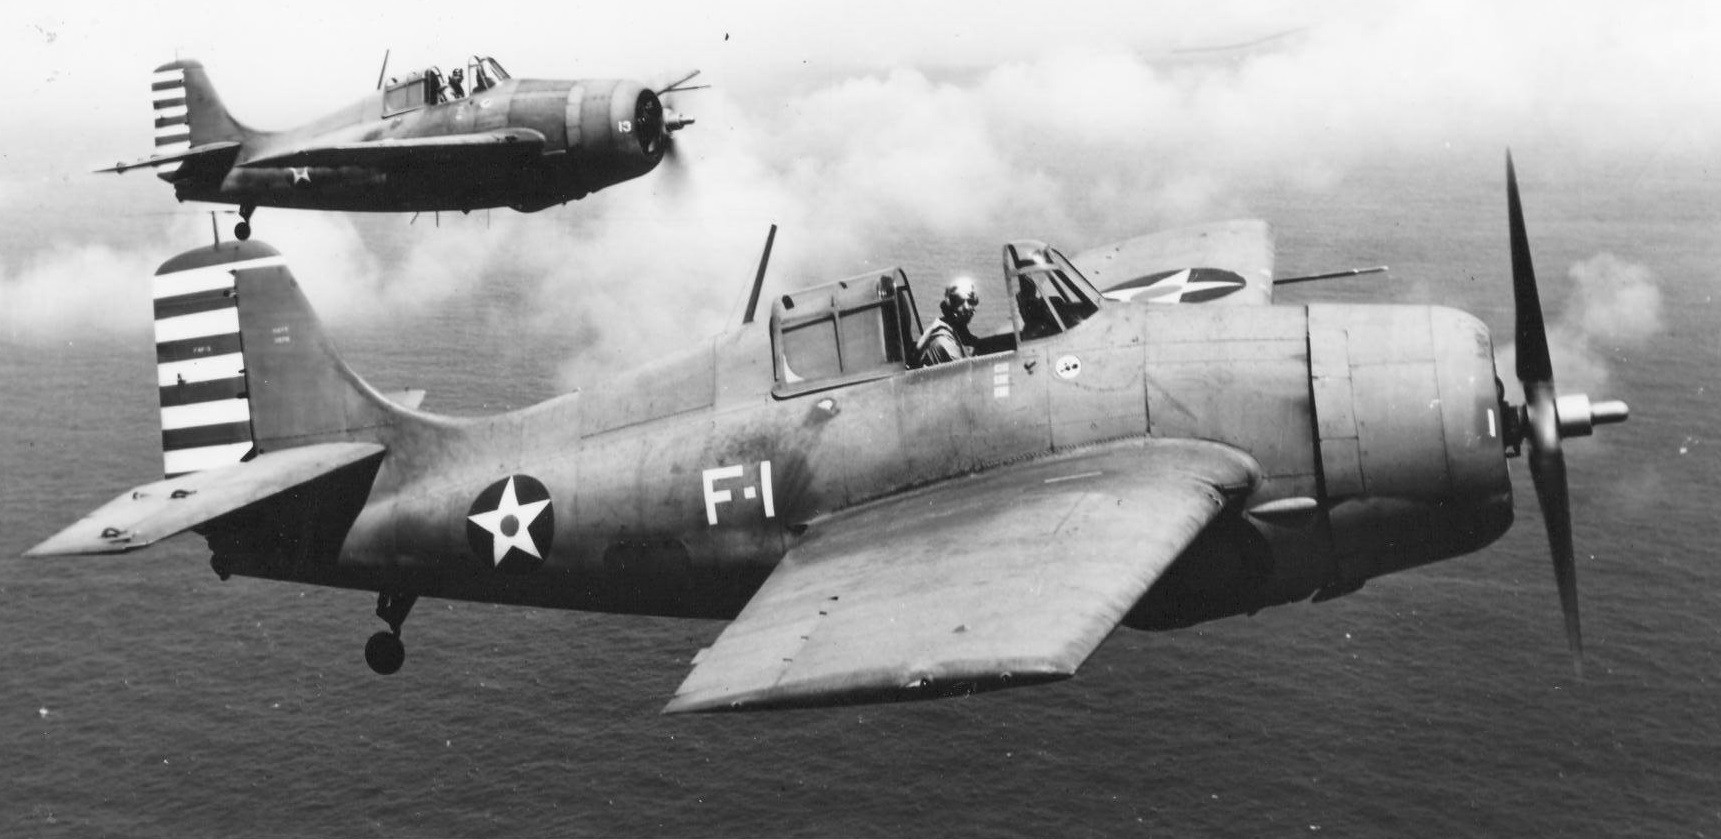 VF-3 F4F-3 Wildcats of Thatch and O'Hare